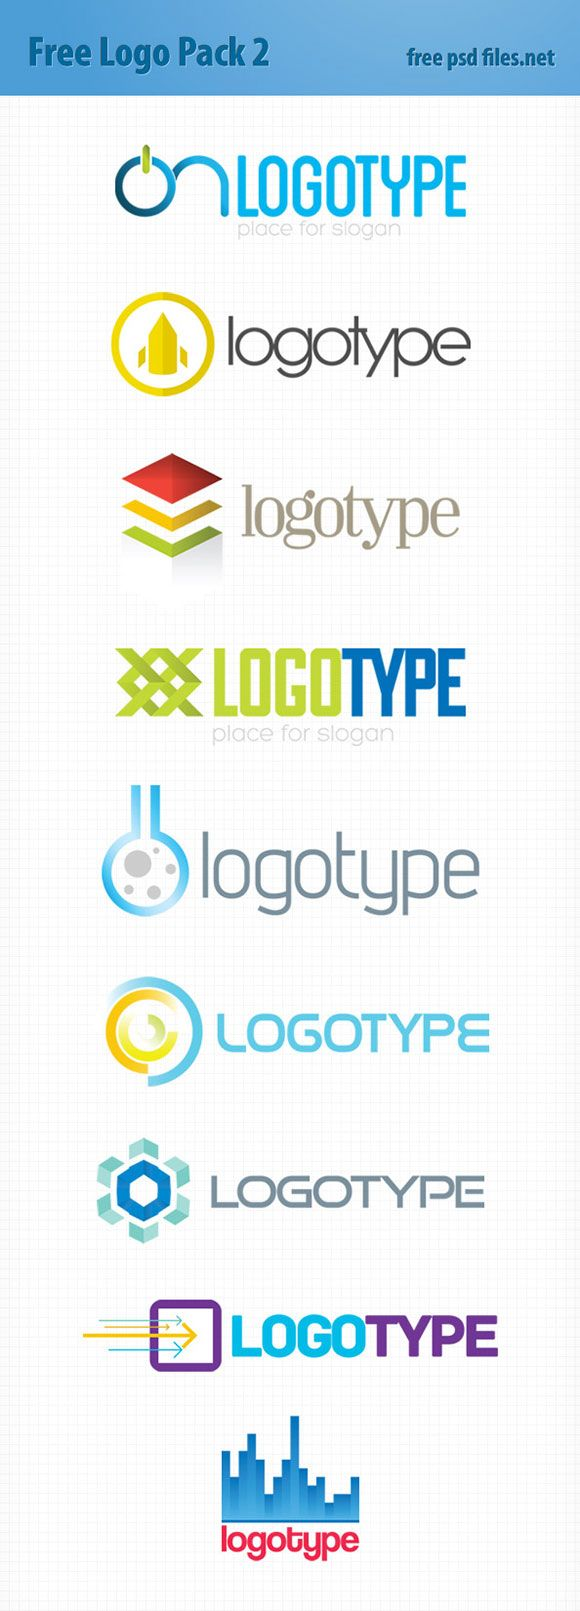 20 Free and High Quality PSD Templates Free